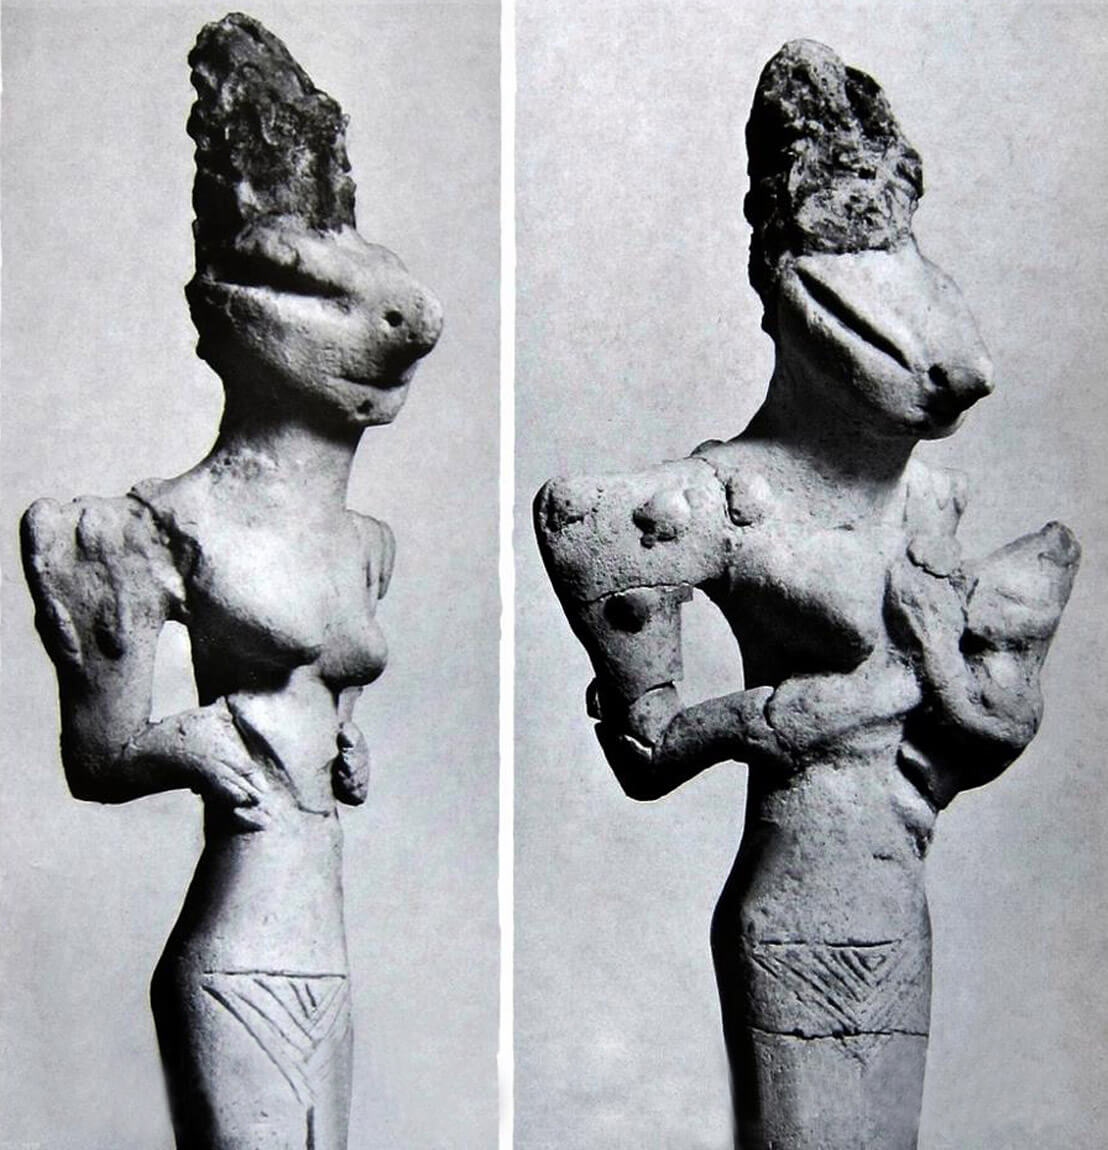 Clay-figurines-with-reptilian-looking-heads-Ubaid-period-5900BC-4000BC